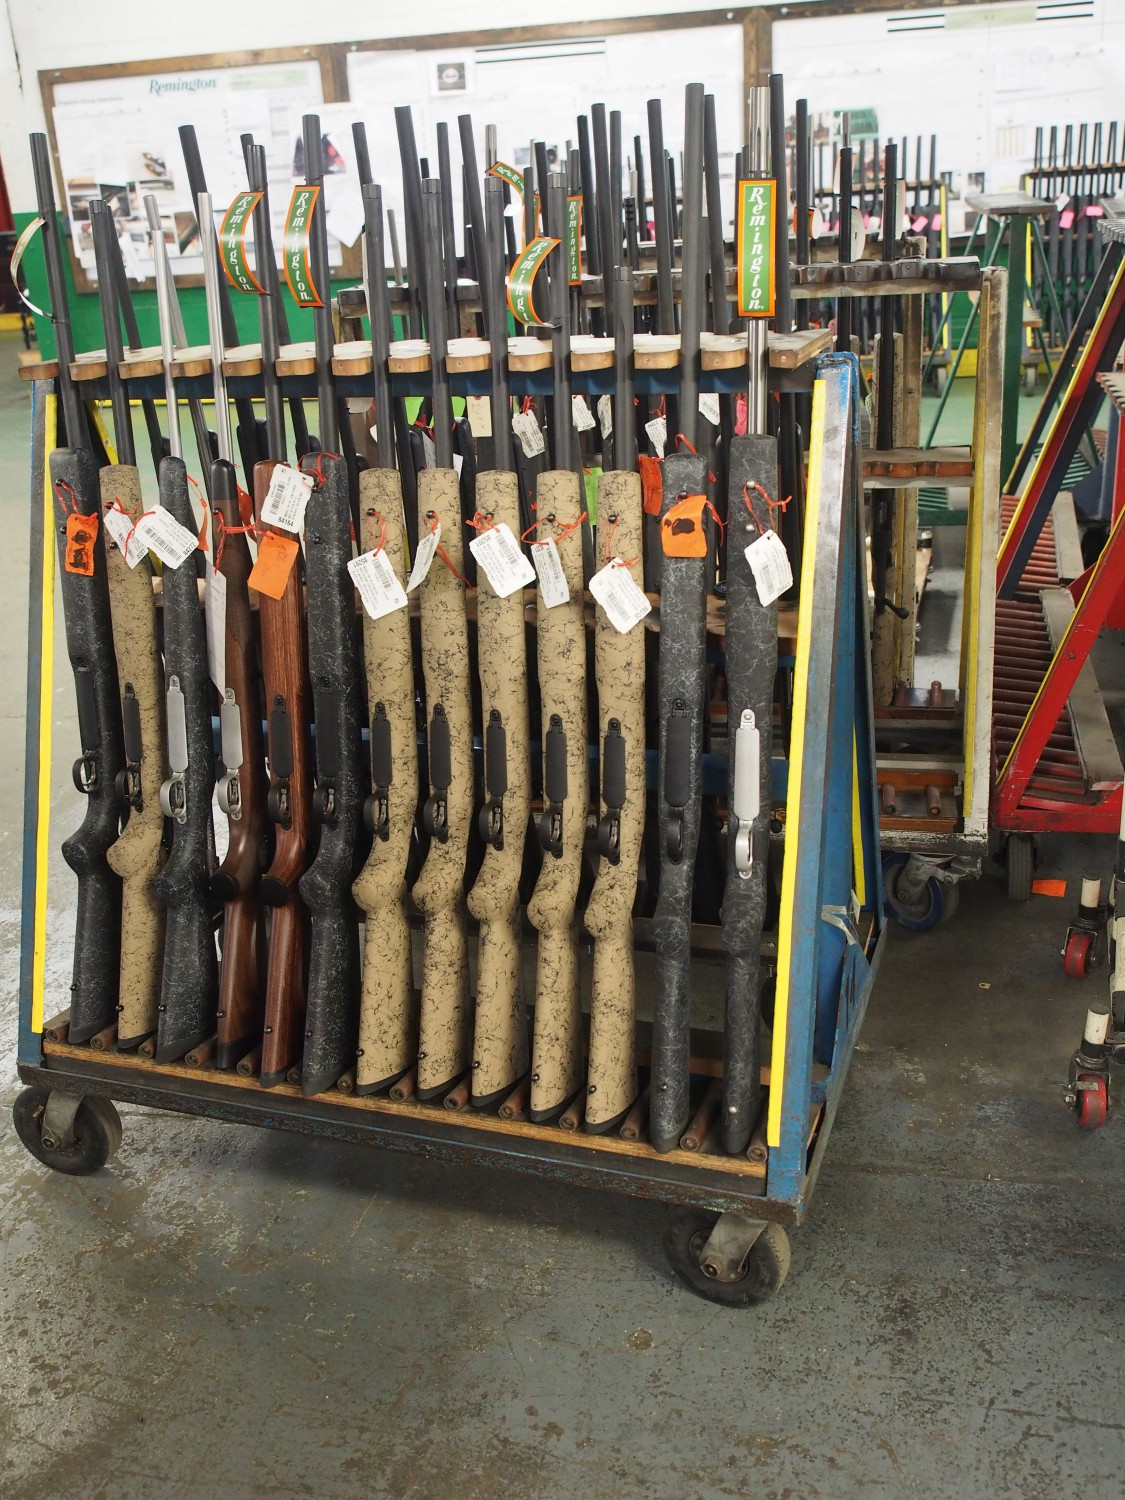 Various Remington 700 Models. These special orders are complete and ready for inspection, packaging and shipping to the customer or police departments.